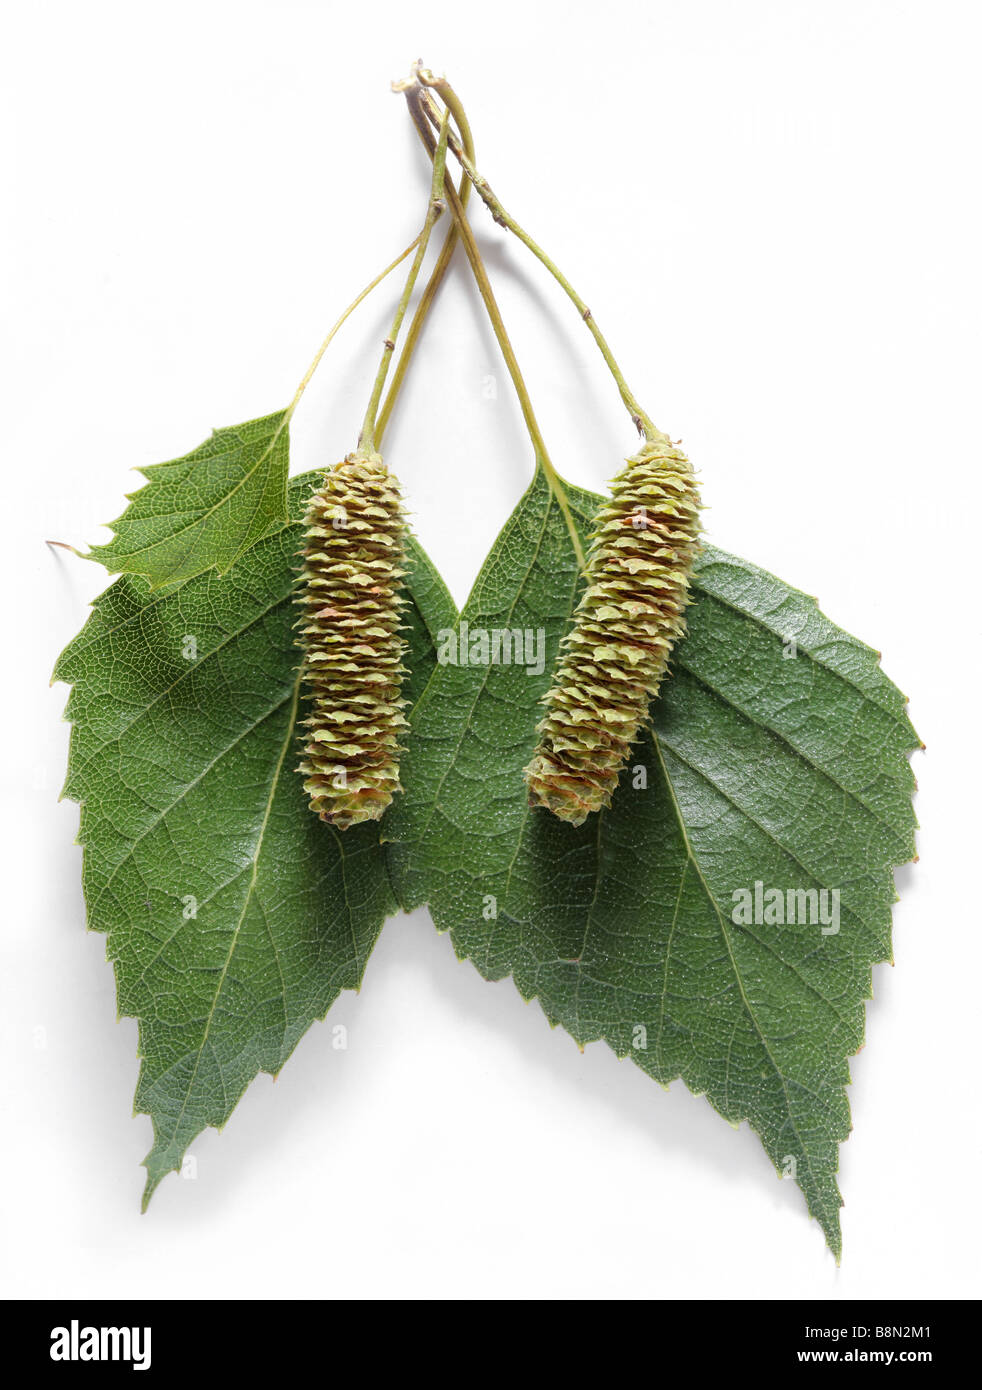 seed of birch - Stock Image